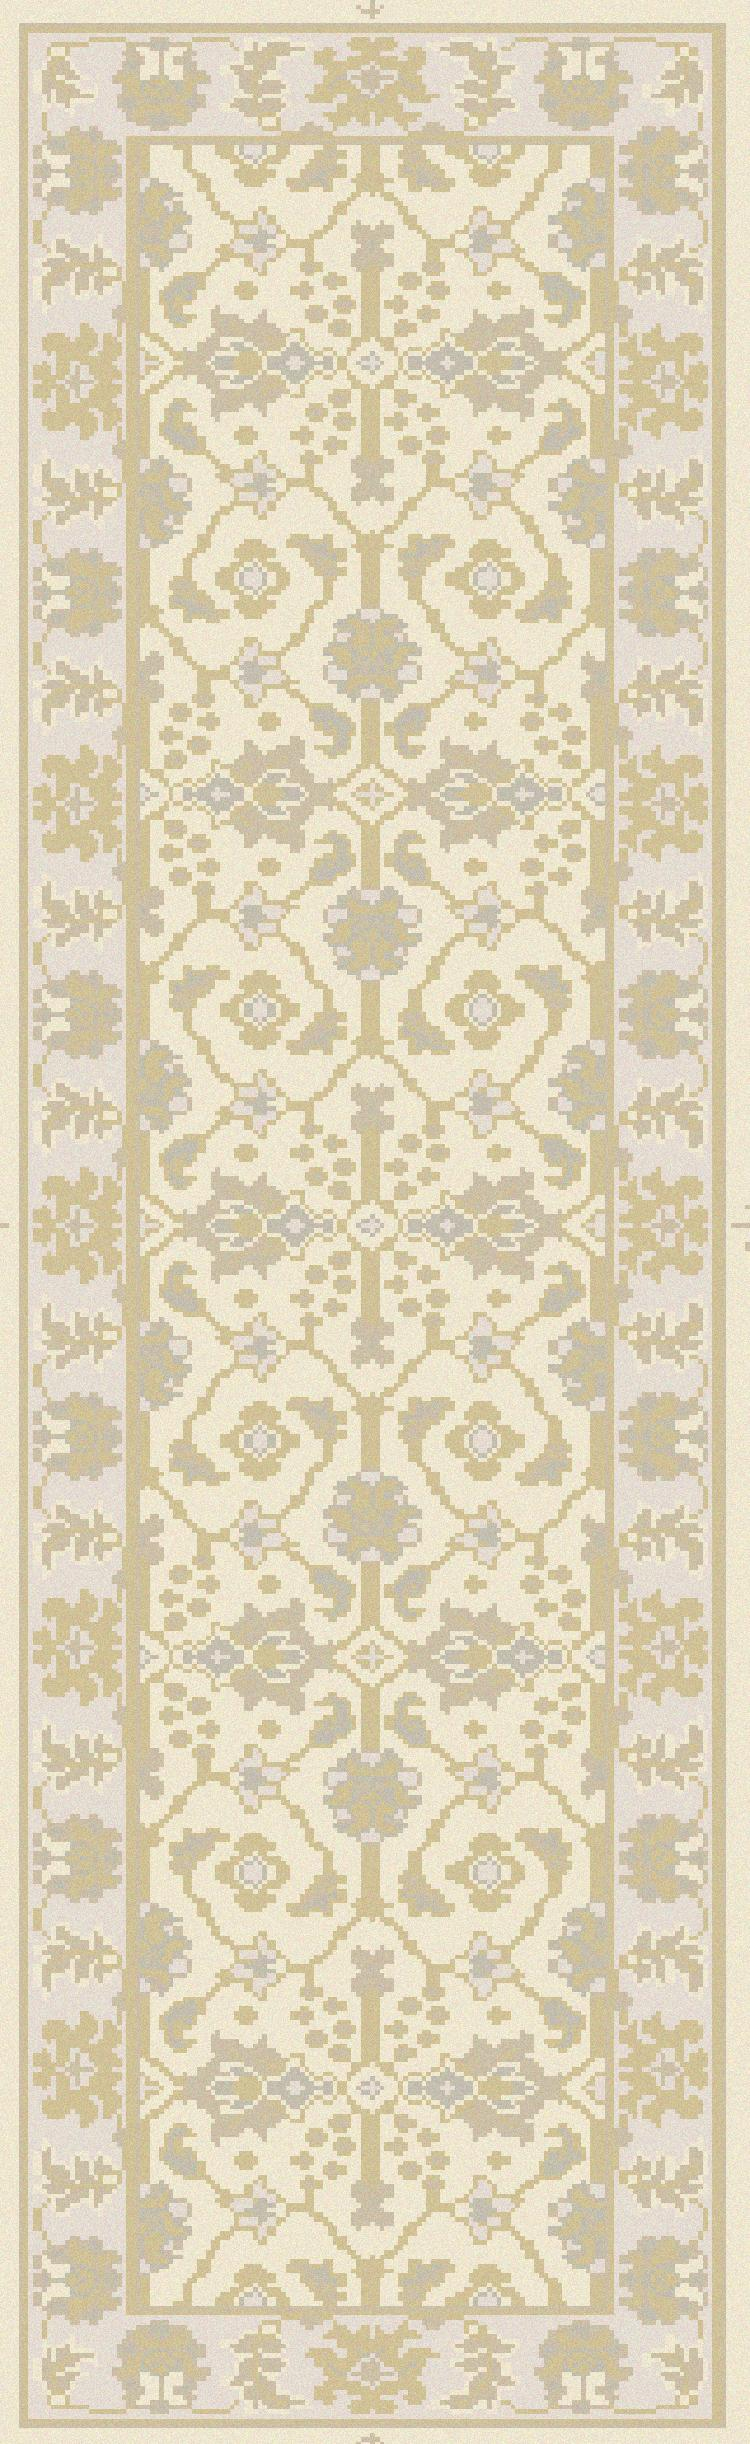 "Surya Rugs Ainsley 2'6"" x 8' - Item Number: AIN1017-268"